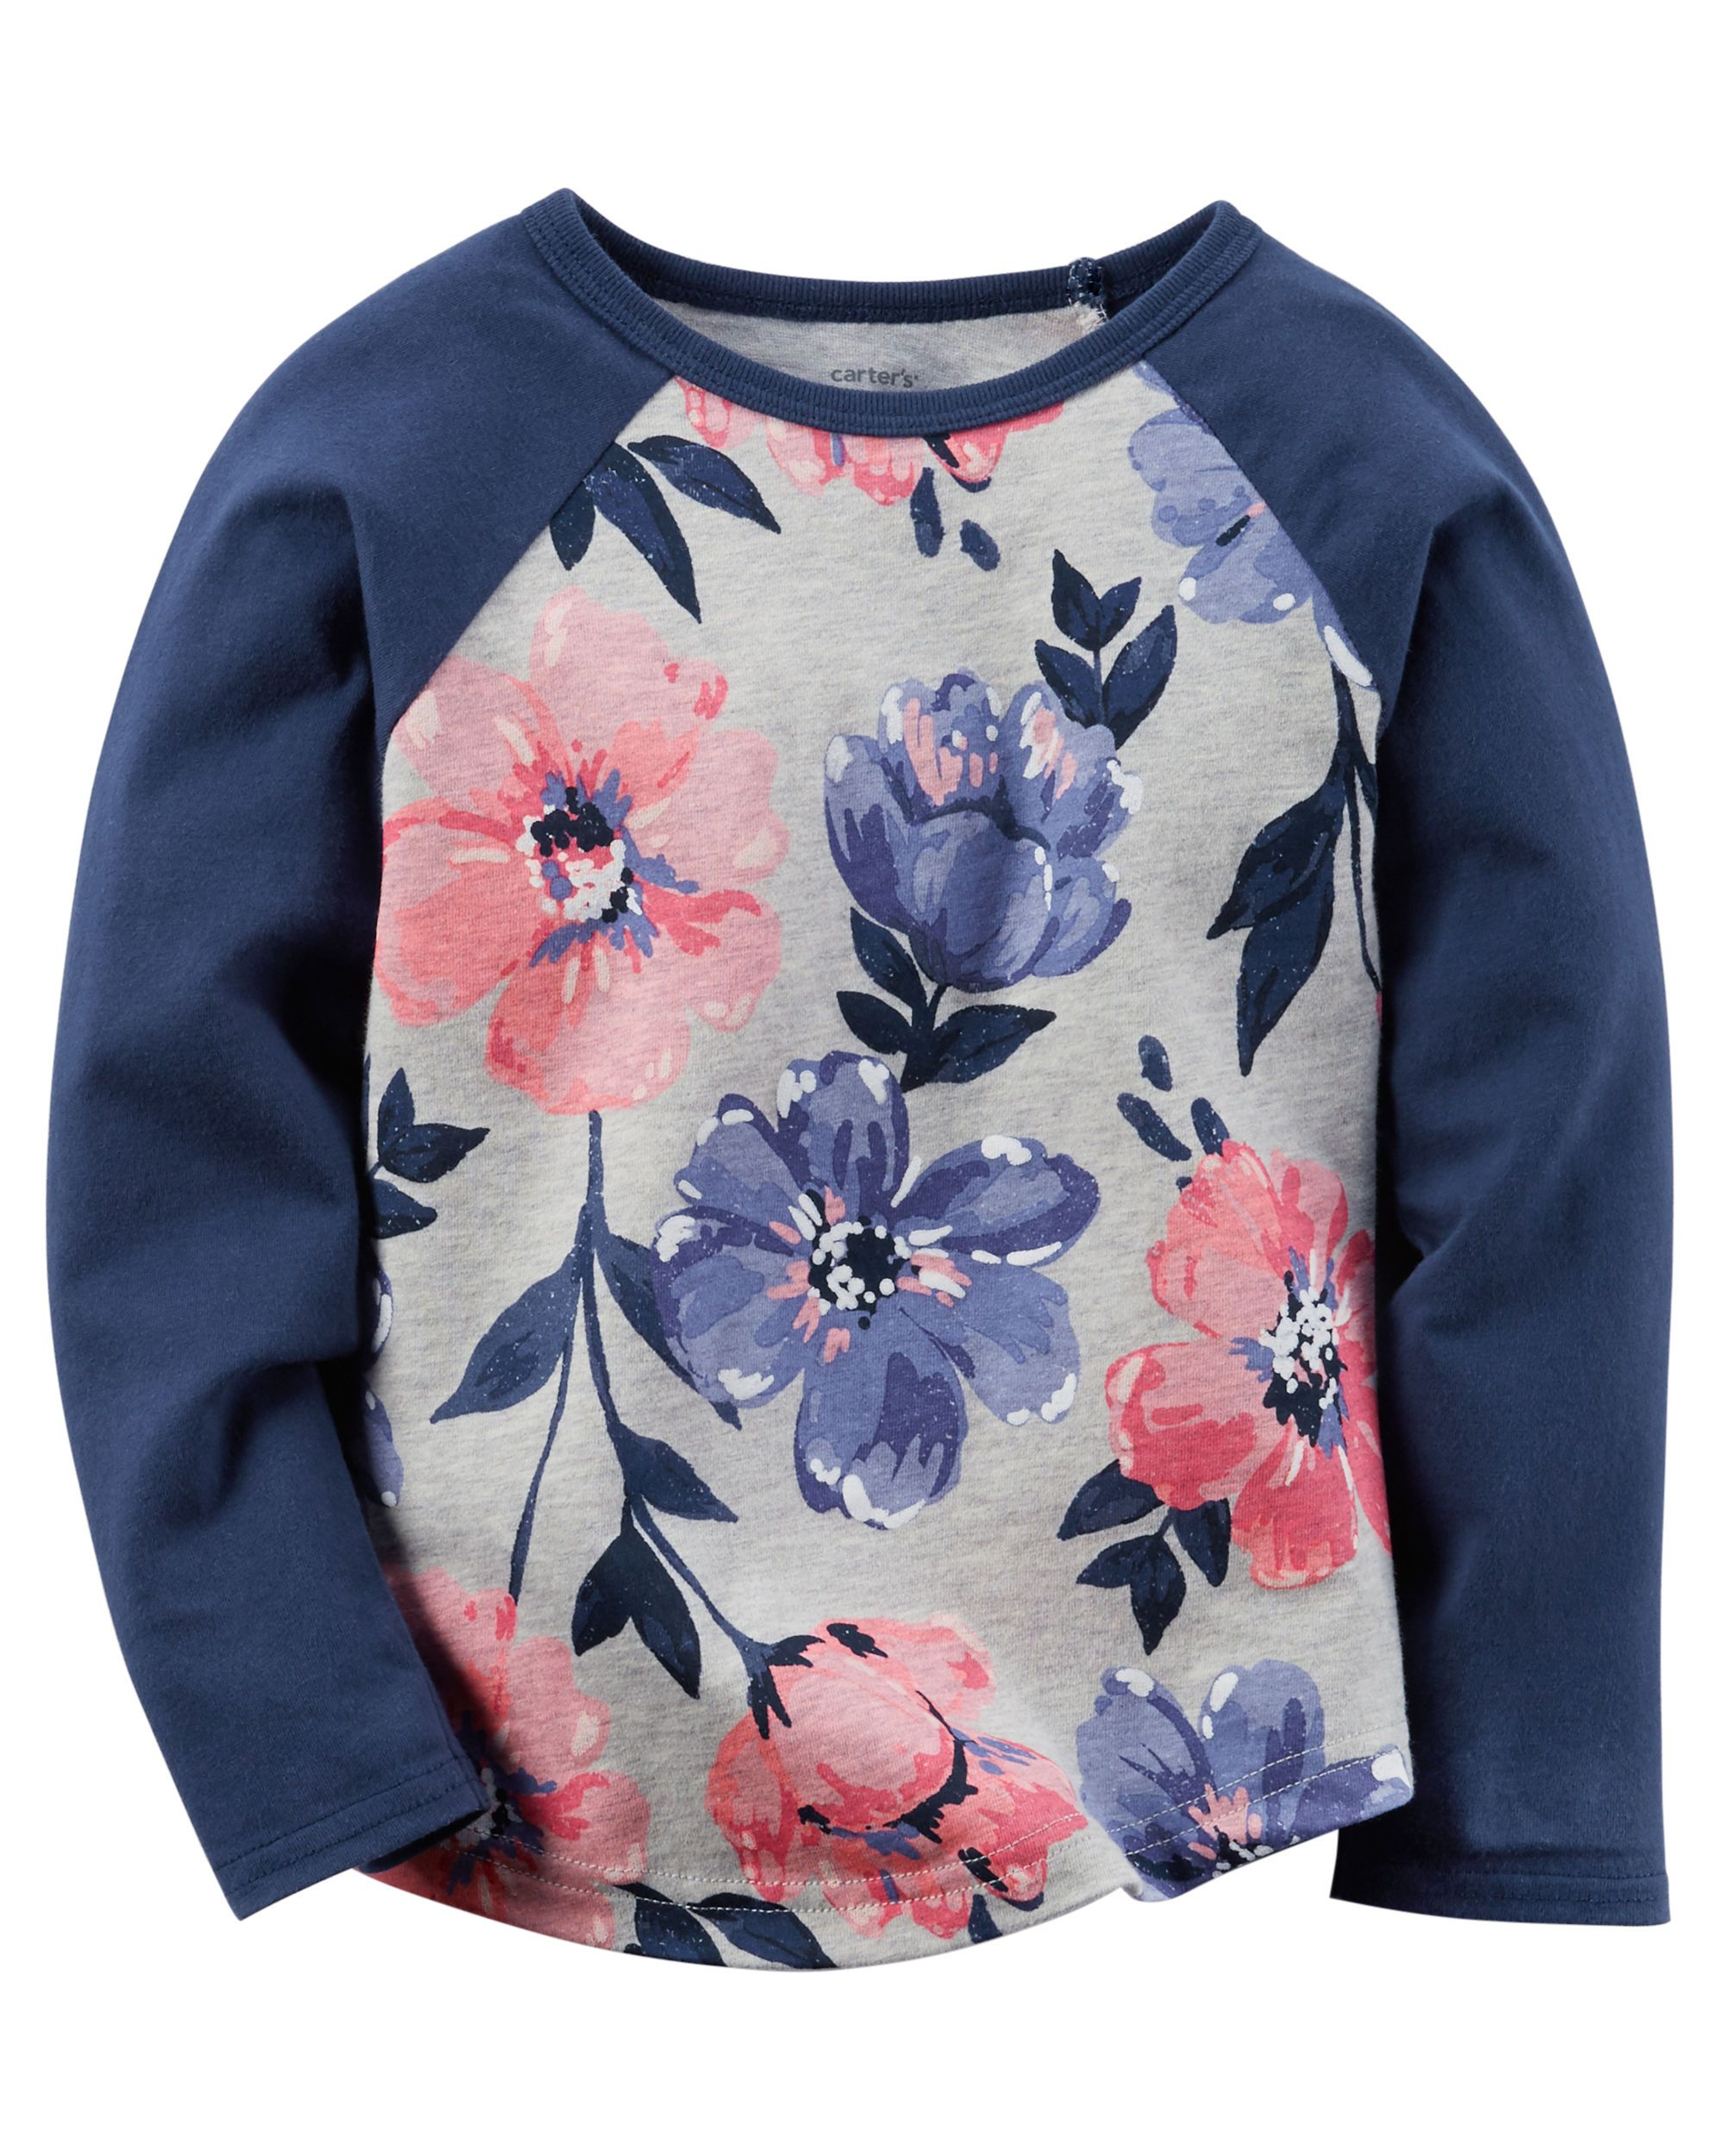 a7de5ad74f574 Crafted in soft jersey with raglan sleeves and a floral print, she's recess…